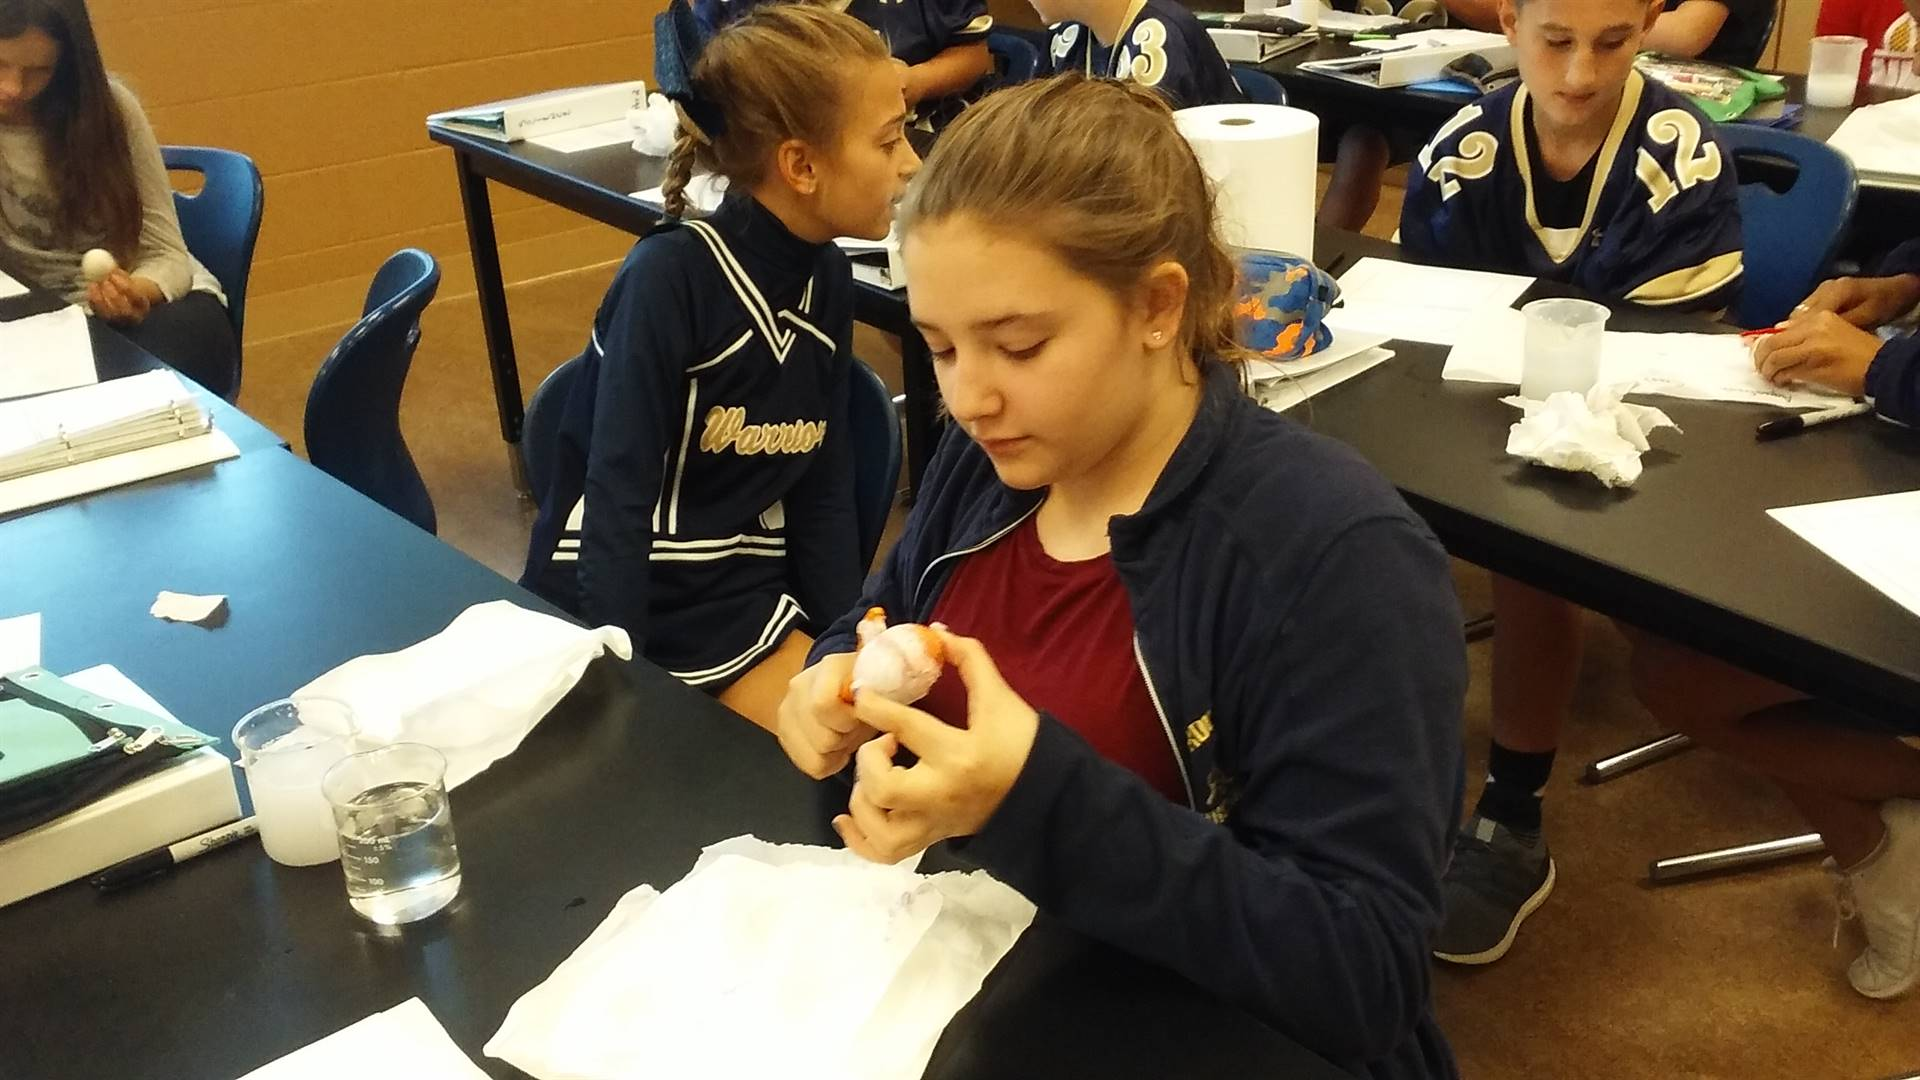 Students in Mr. Berry's science class design an experiment used to investigate which brand of toothp